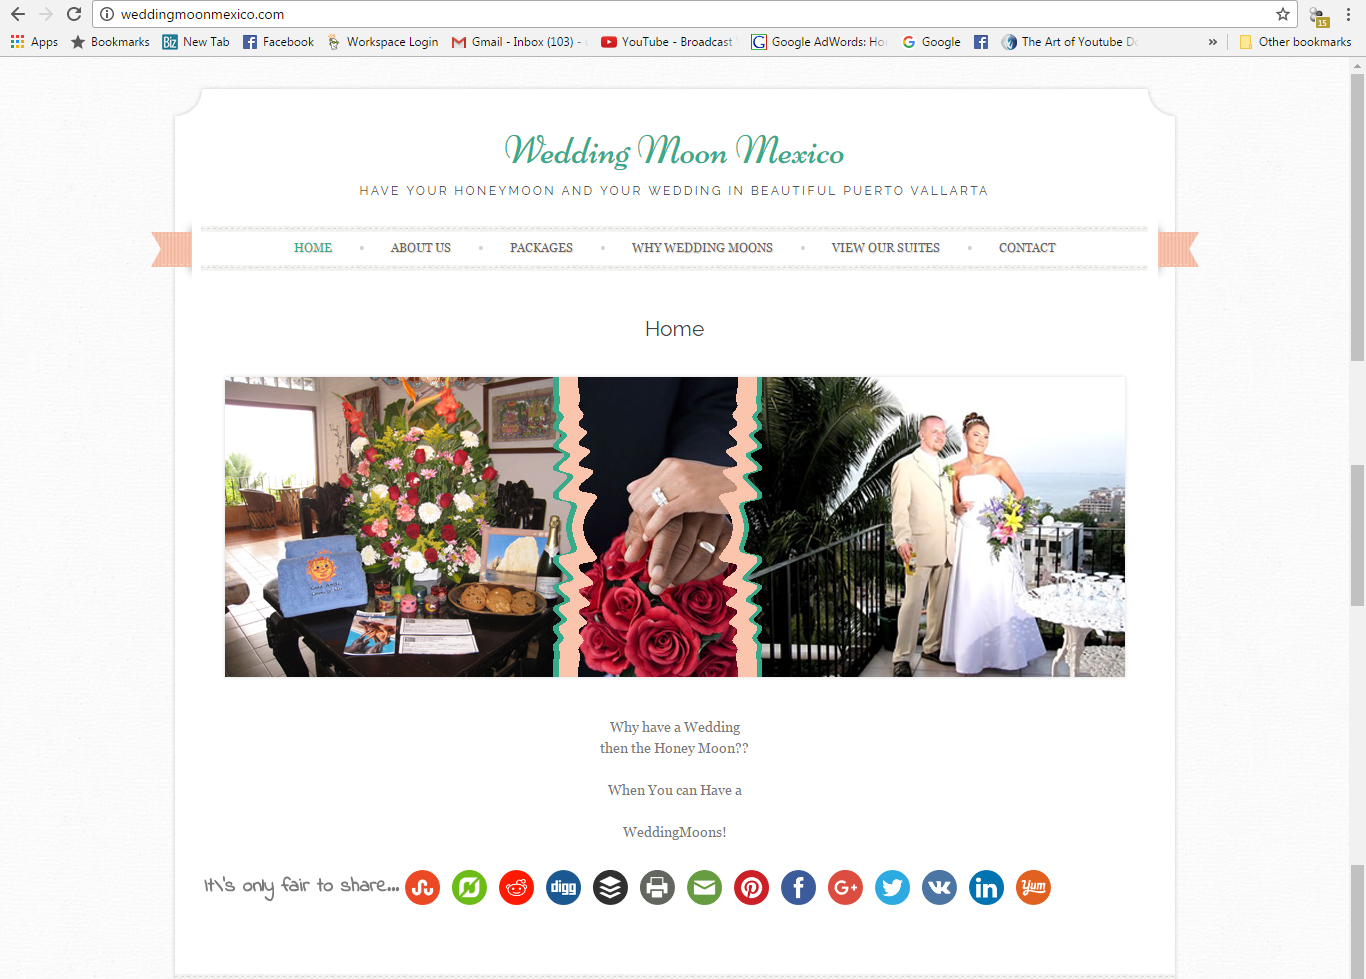 Wedding Moon Mexico Website